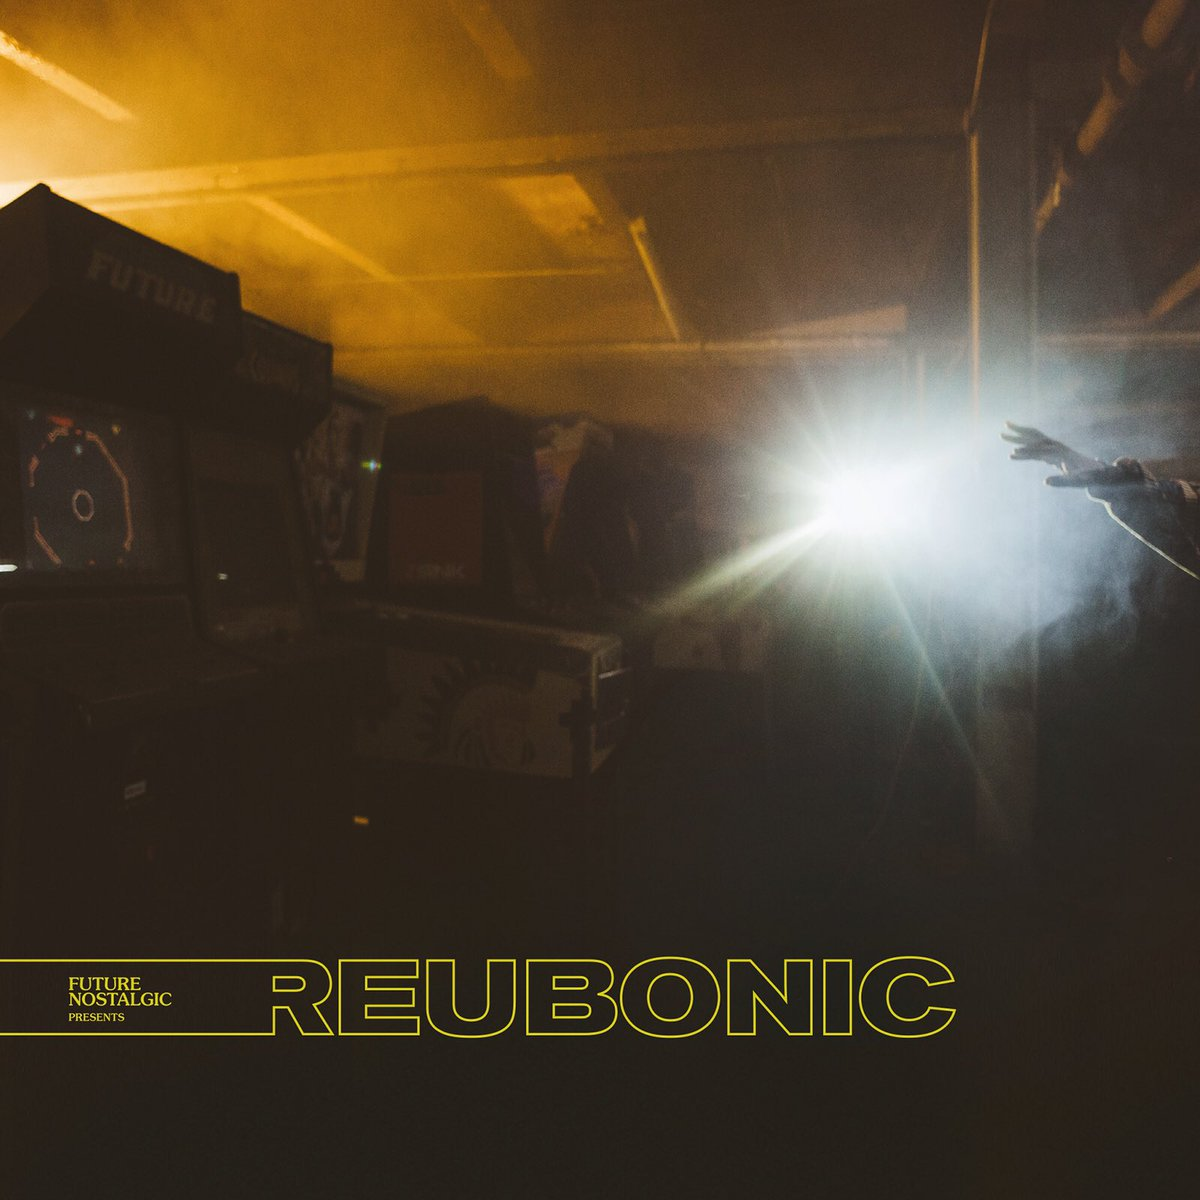 """""""Reubonic""""- Short Film directed by Dustbrand Films. Check it out at https://t.co/v9pNyjCBx1. More music to come... https://t.co/FUOXJ4Xl78"""